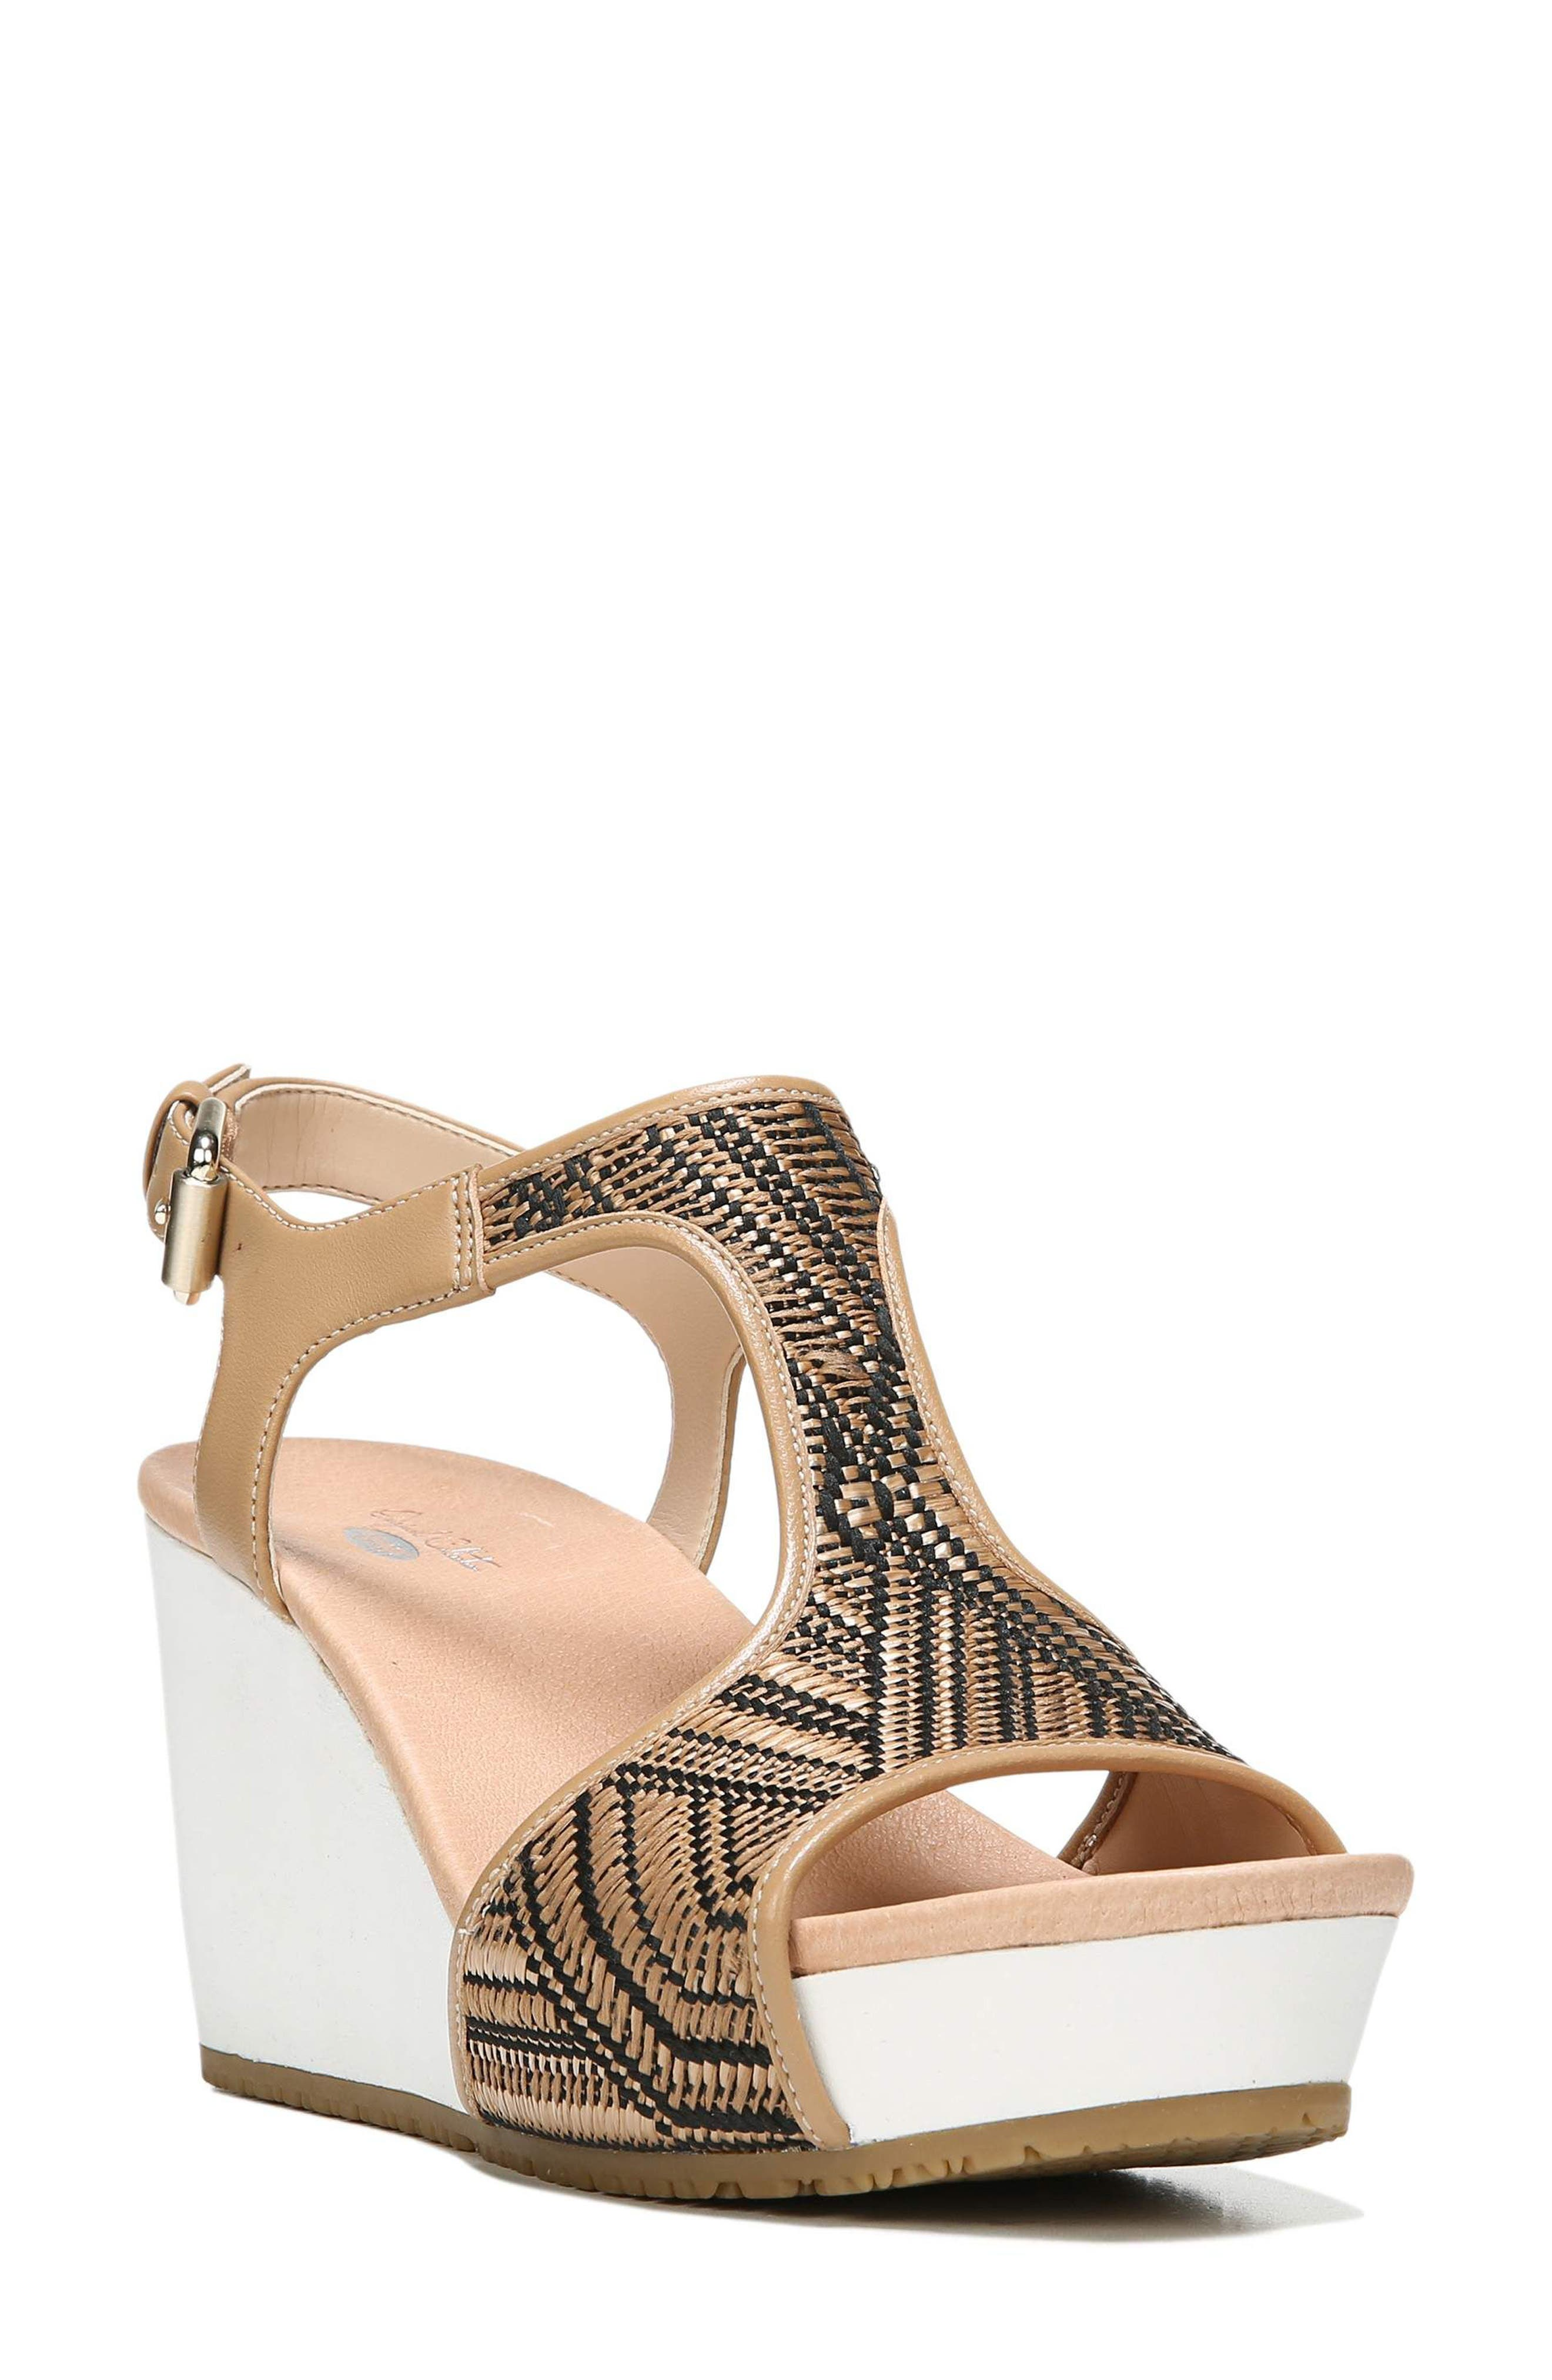 Alternate Image 1 Selected - Dr. Scholl's 'Original Collection Wiley' Wedge Sandal (Women)